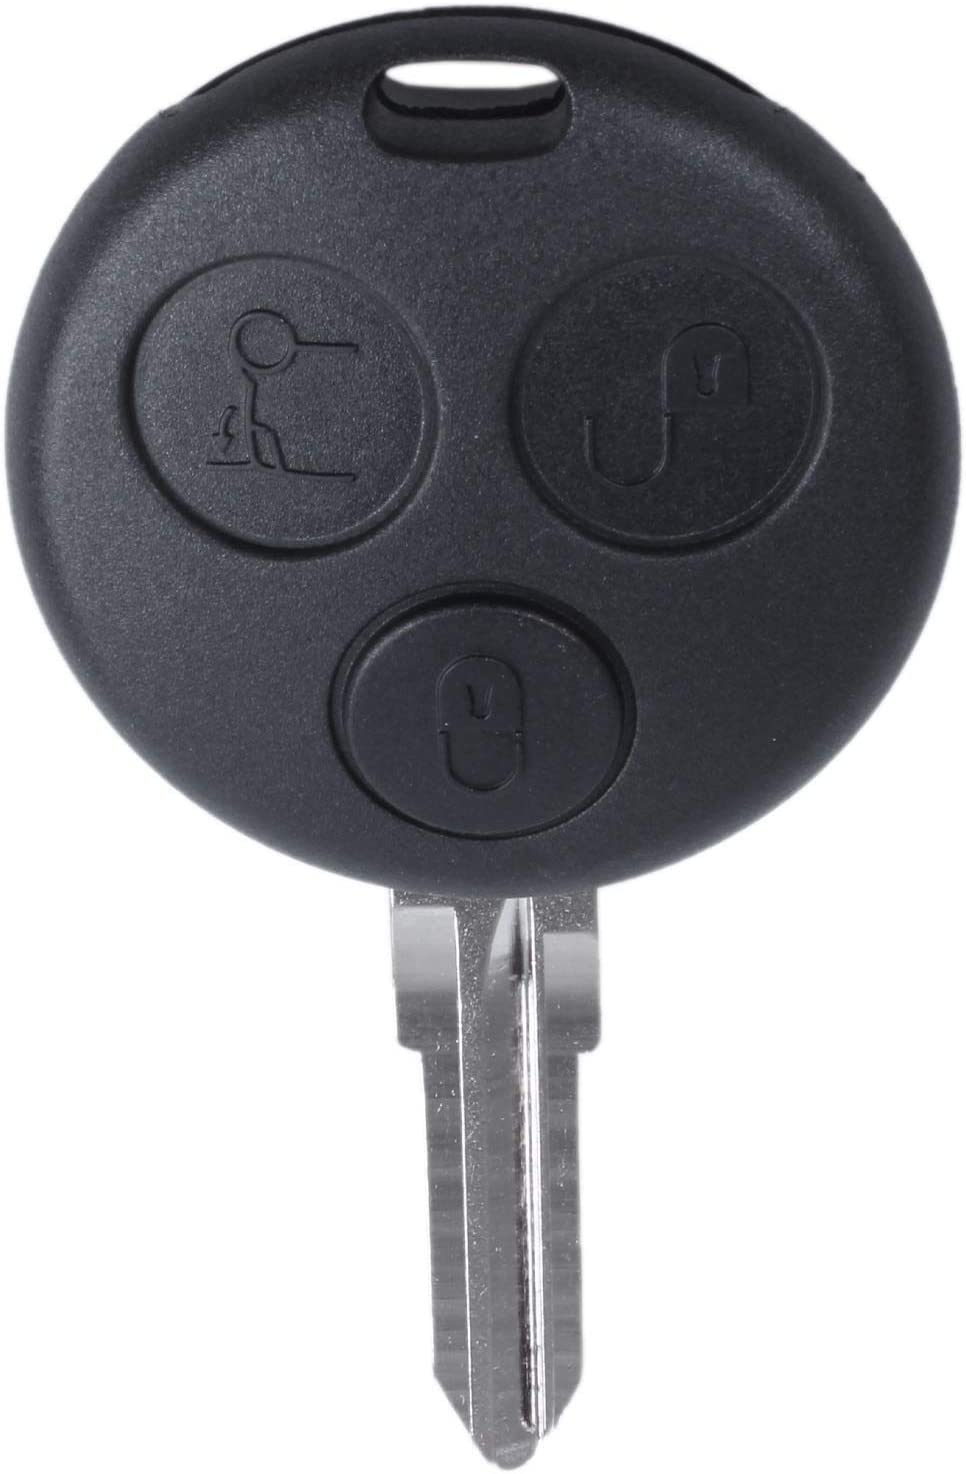 RETYLY 3 Button Car 433MHz Remote Key Fob Blade for Smart Fortwo Forfour City Roadster